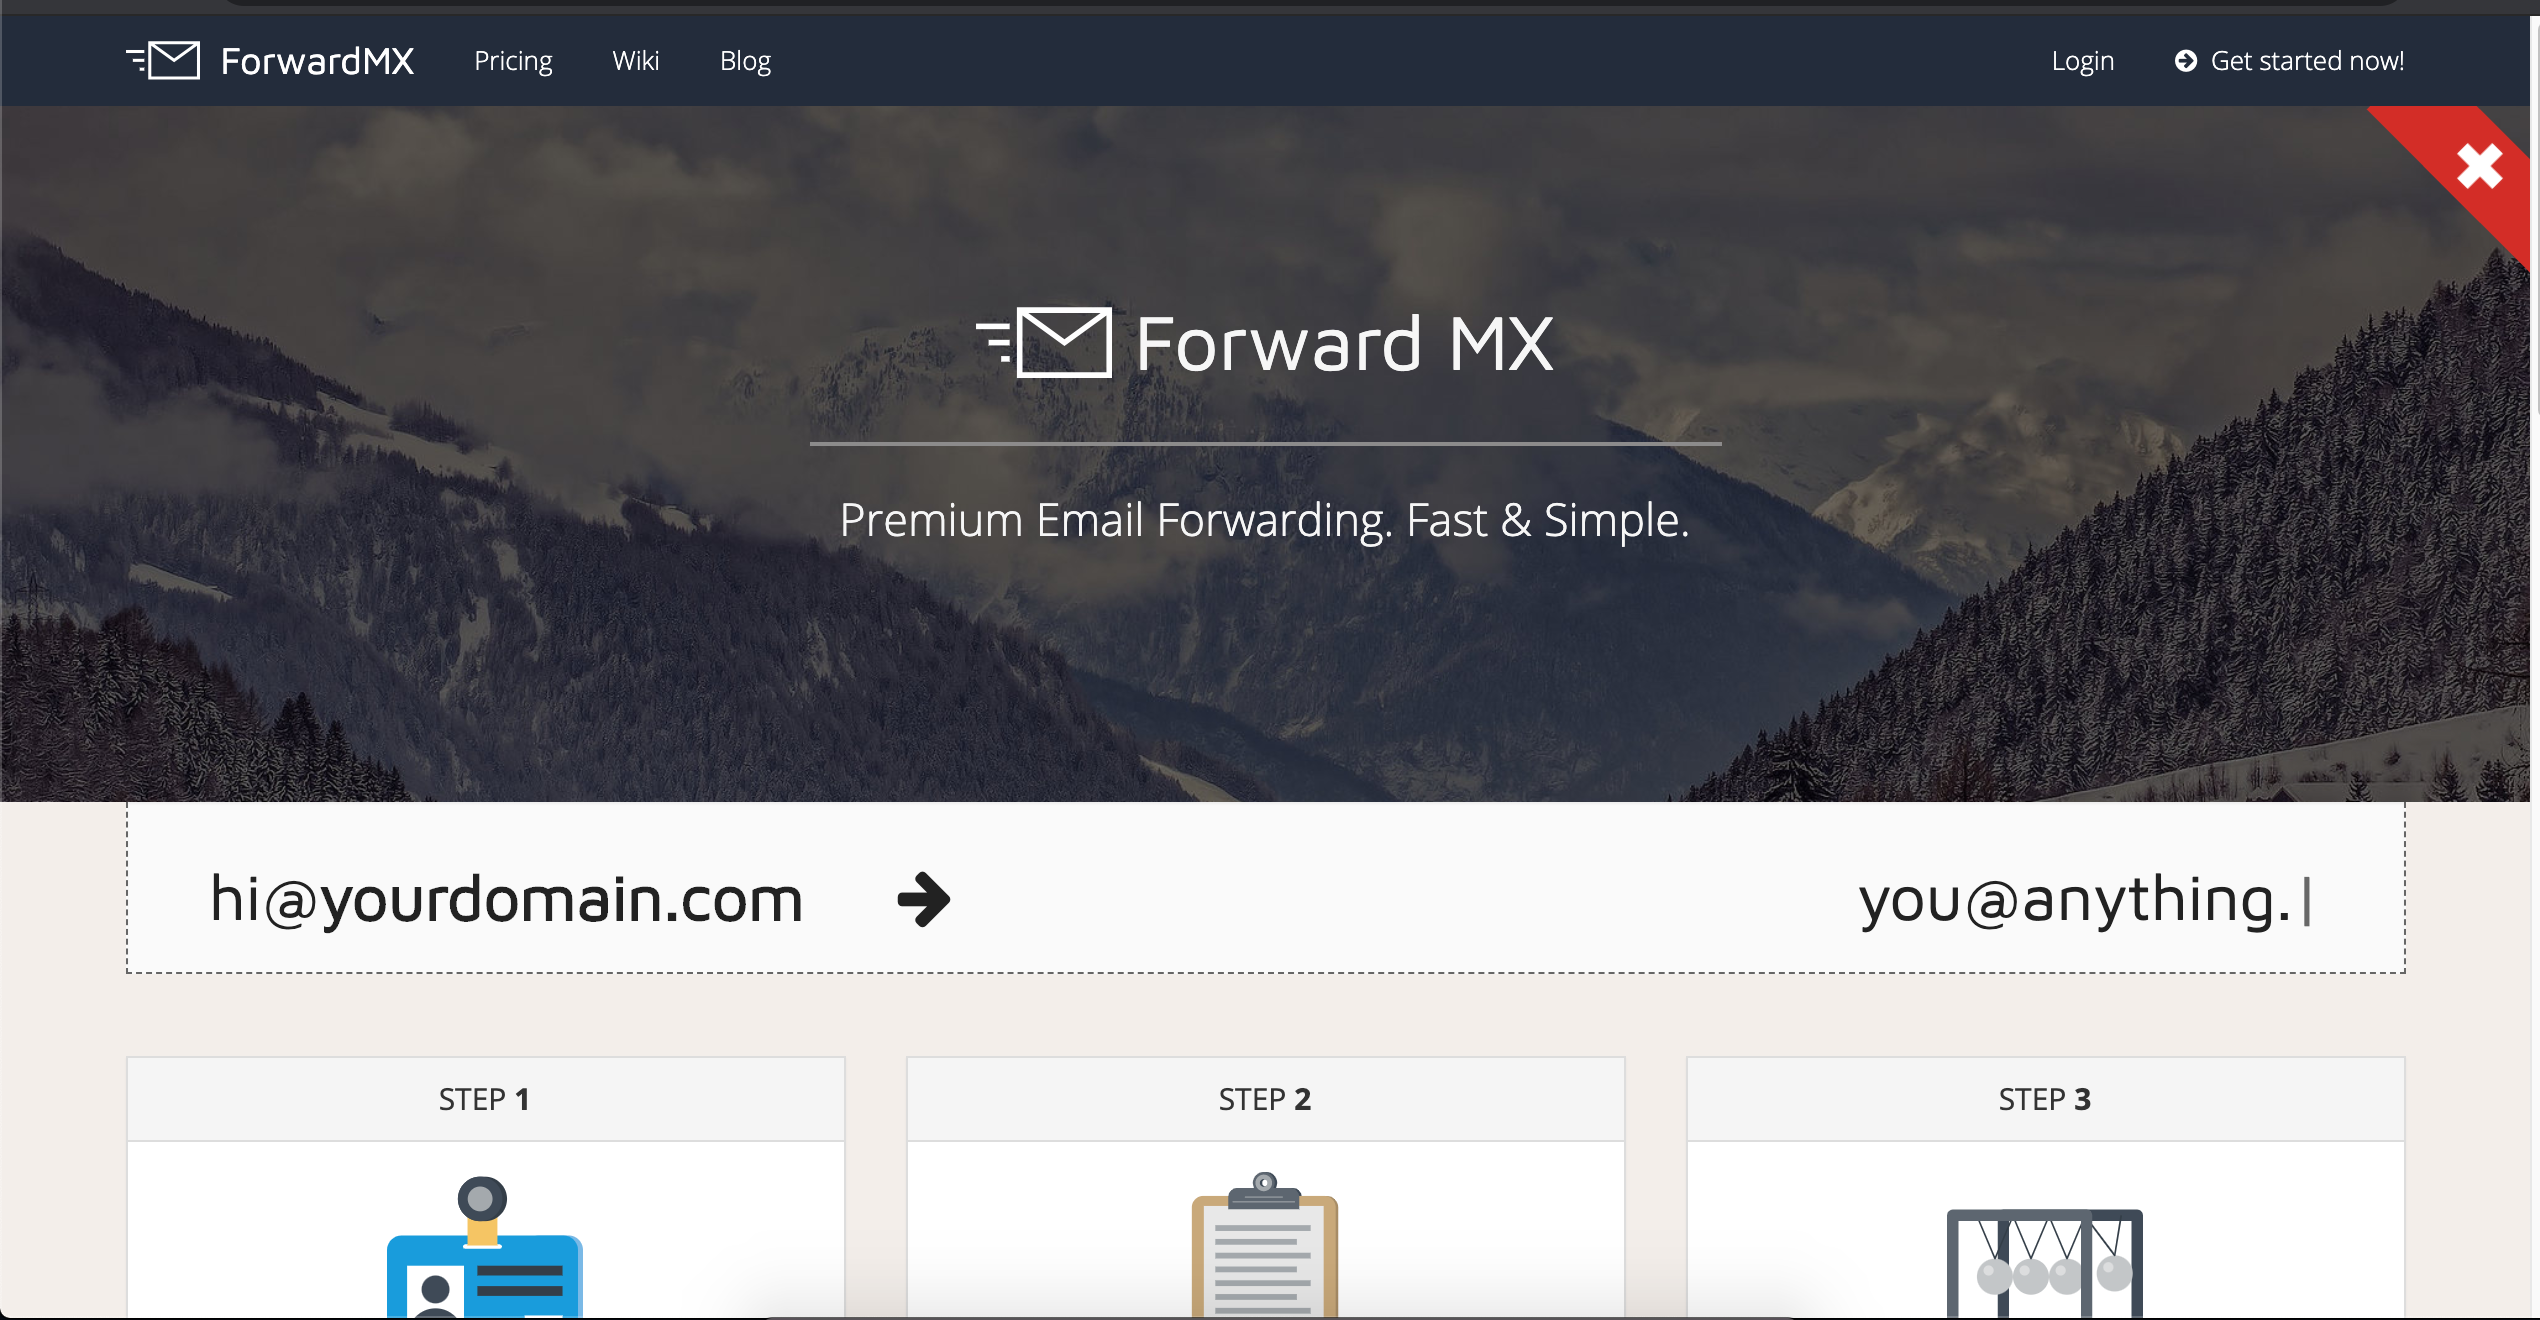 ForwardMX.io